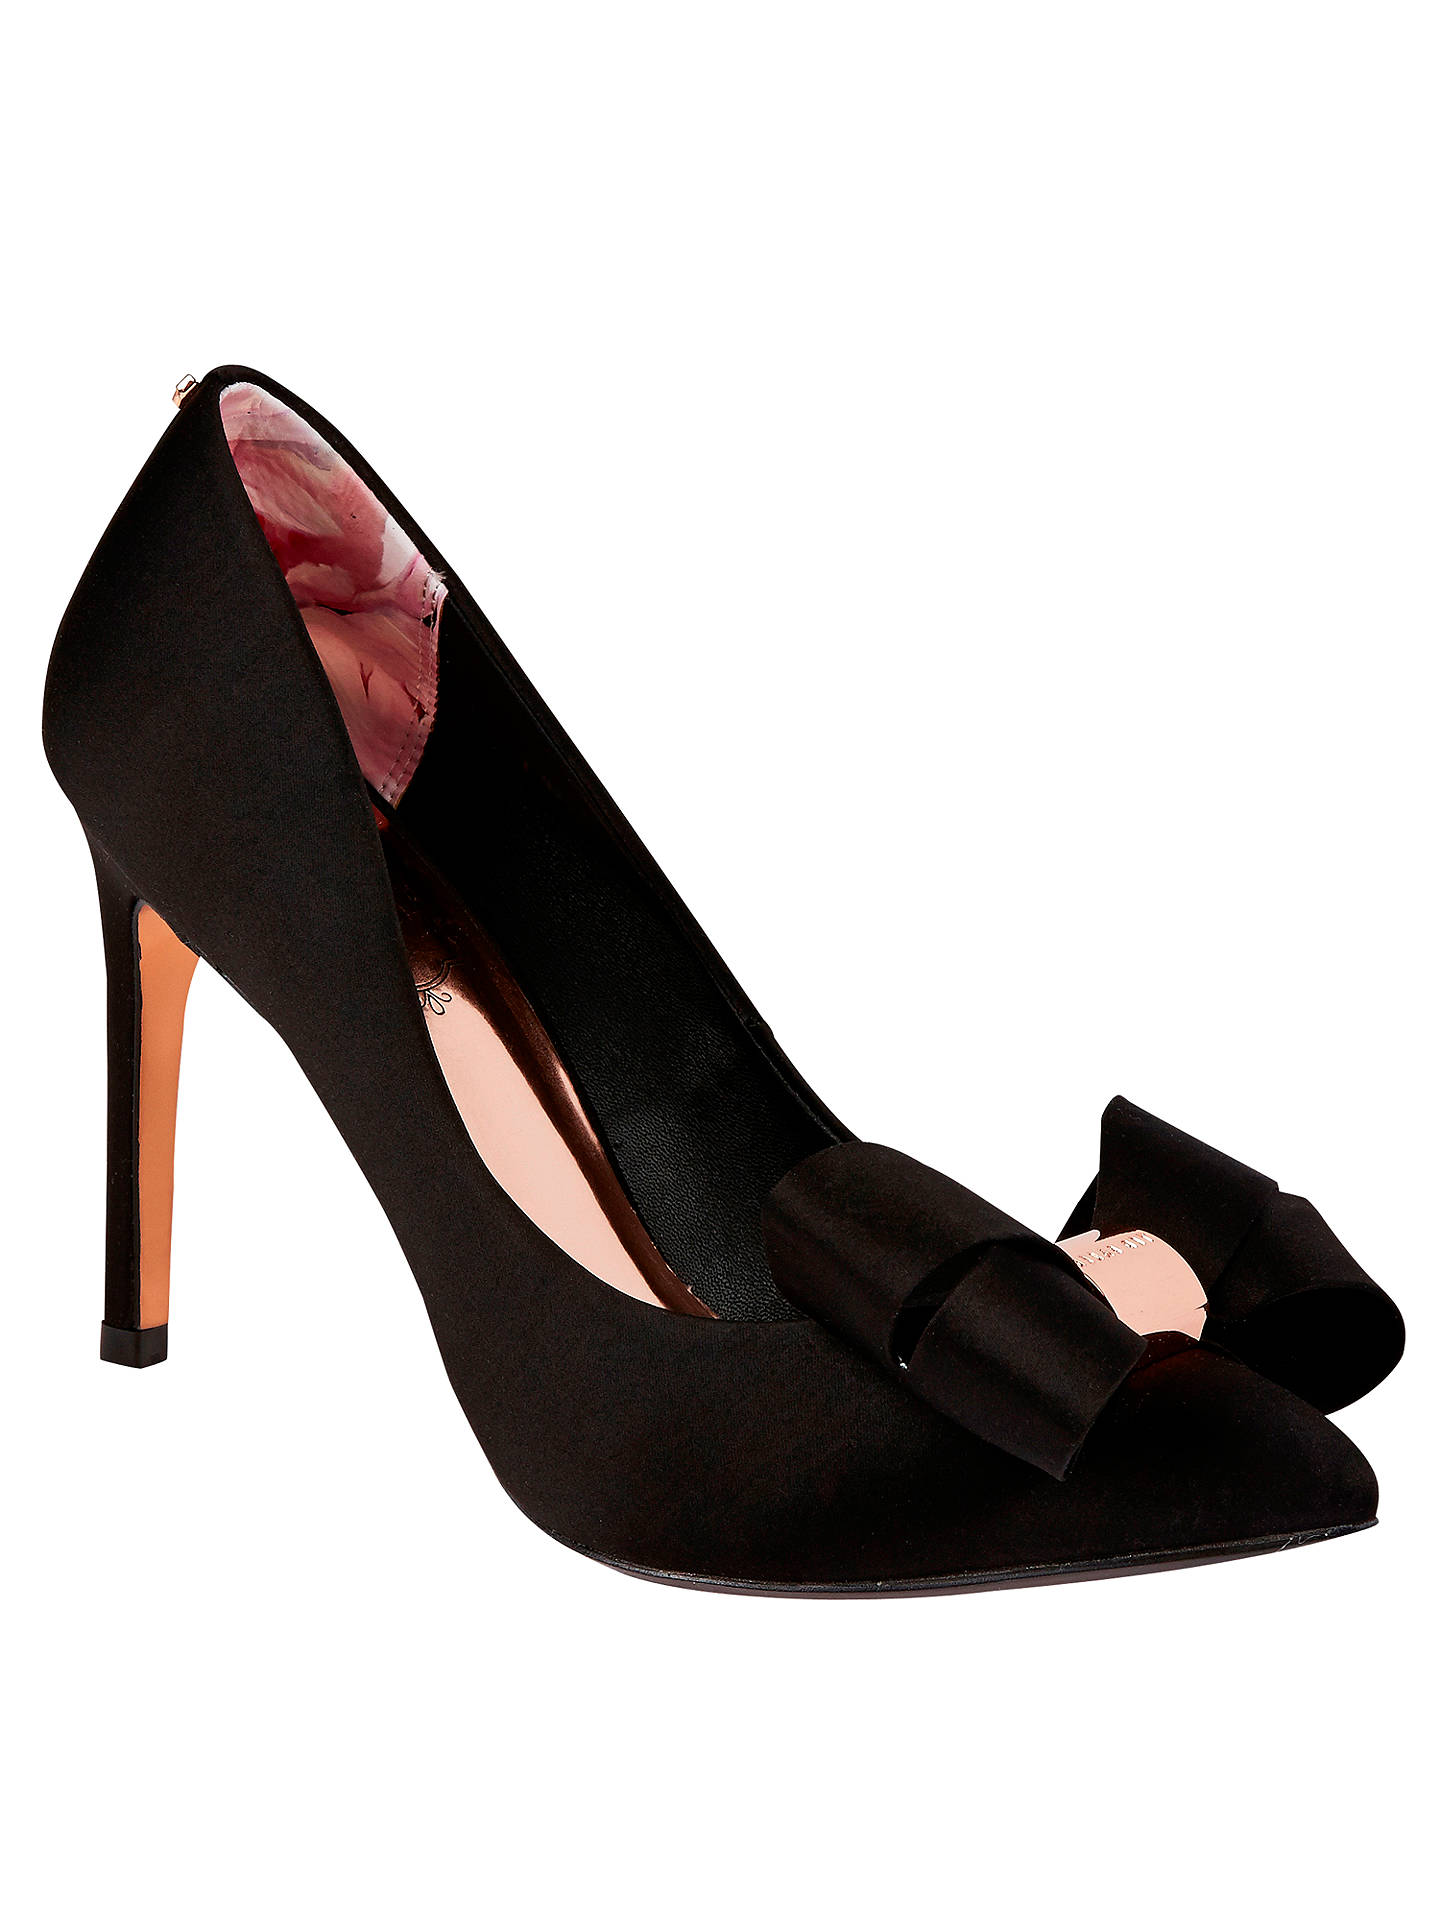 7dafeb27e09 Ted Baker Ichlibi Pointed Toe Stiletto Court Shoes, Black at John ...